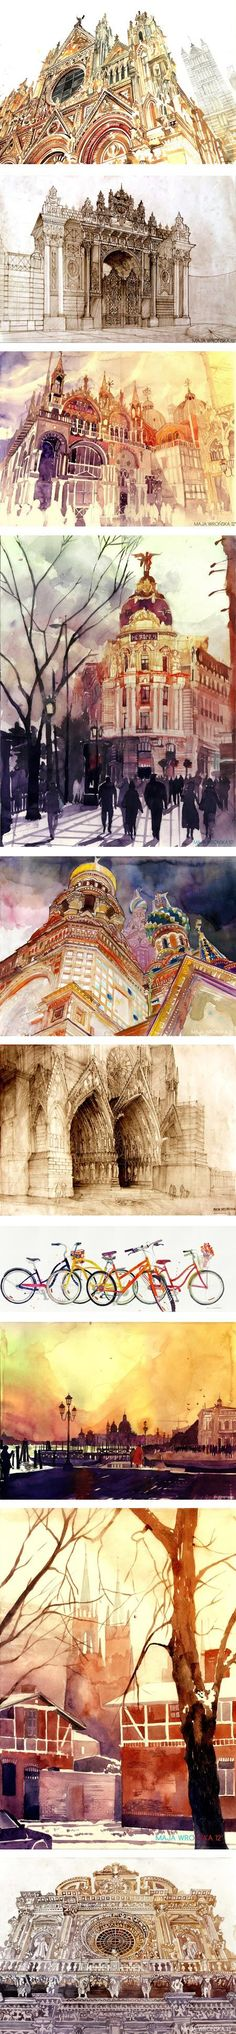 artists, visual arts, architectural drawings, watercolor paintings, watercolor concept art, 3d art, blog, architecture concept art, maja wronska